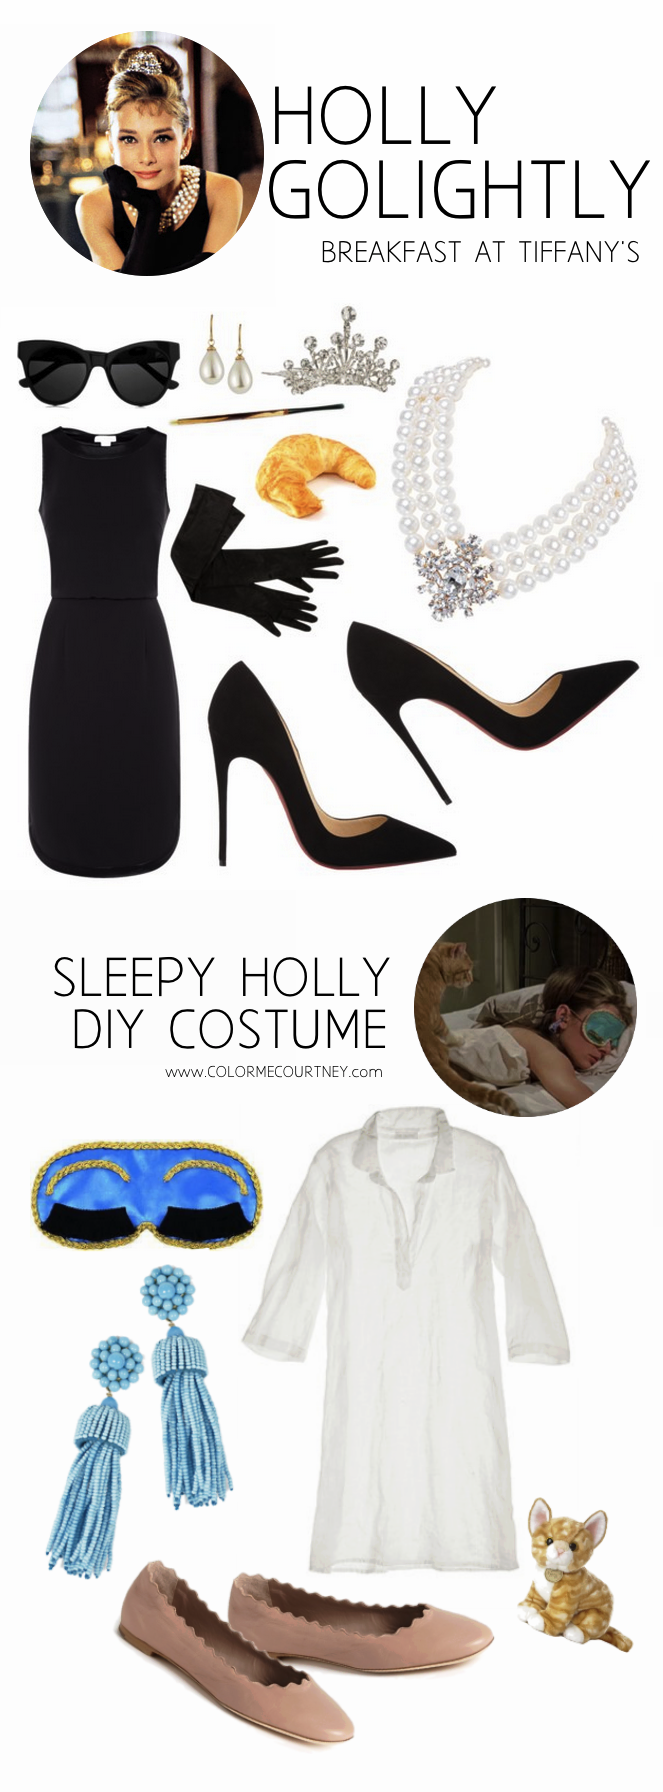 easy diy halloween costumes holly golightly from breakfast at tiffany 39 s audrey hepburn. Black Bedroom Furniture Sets. Home Design Ideas